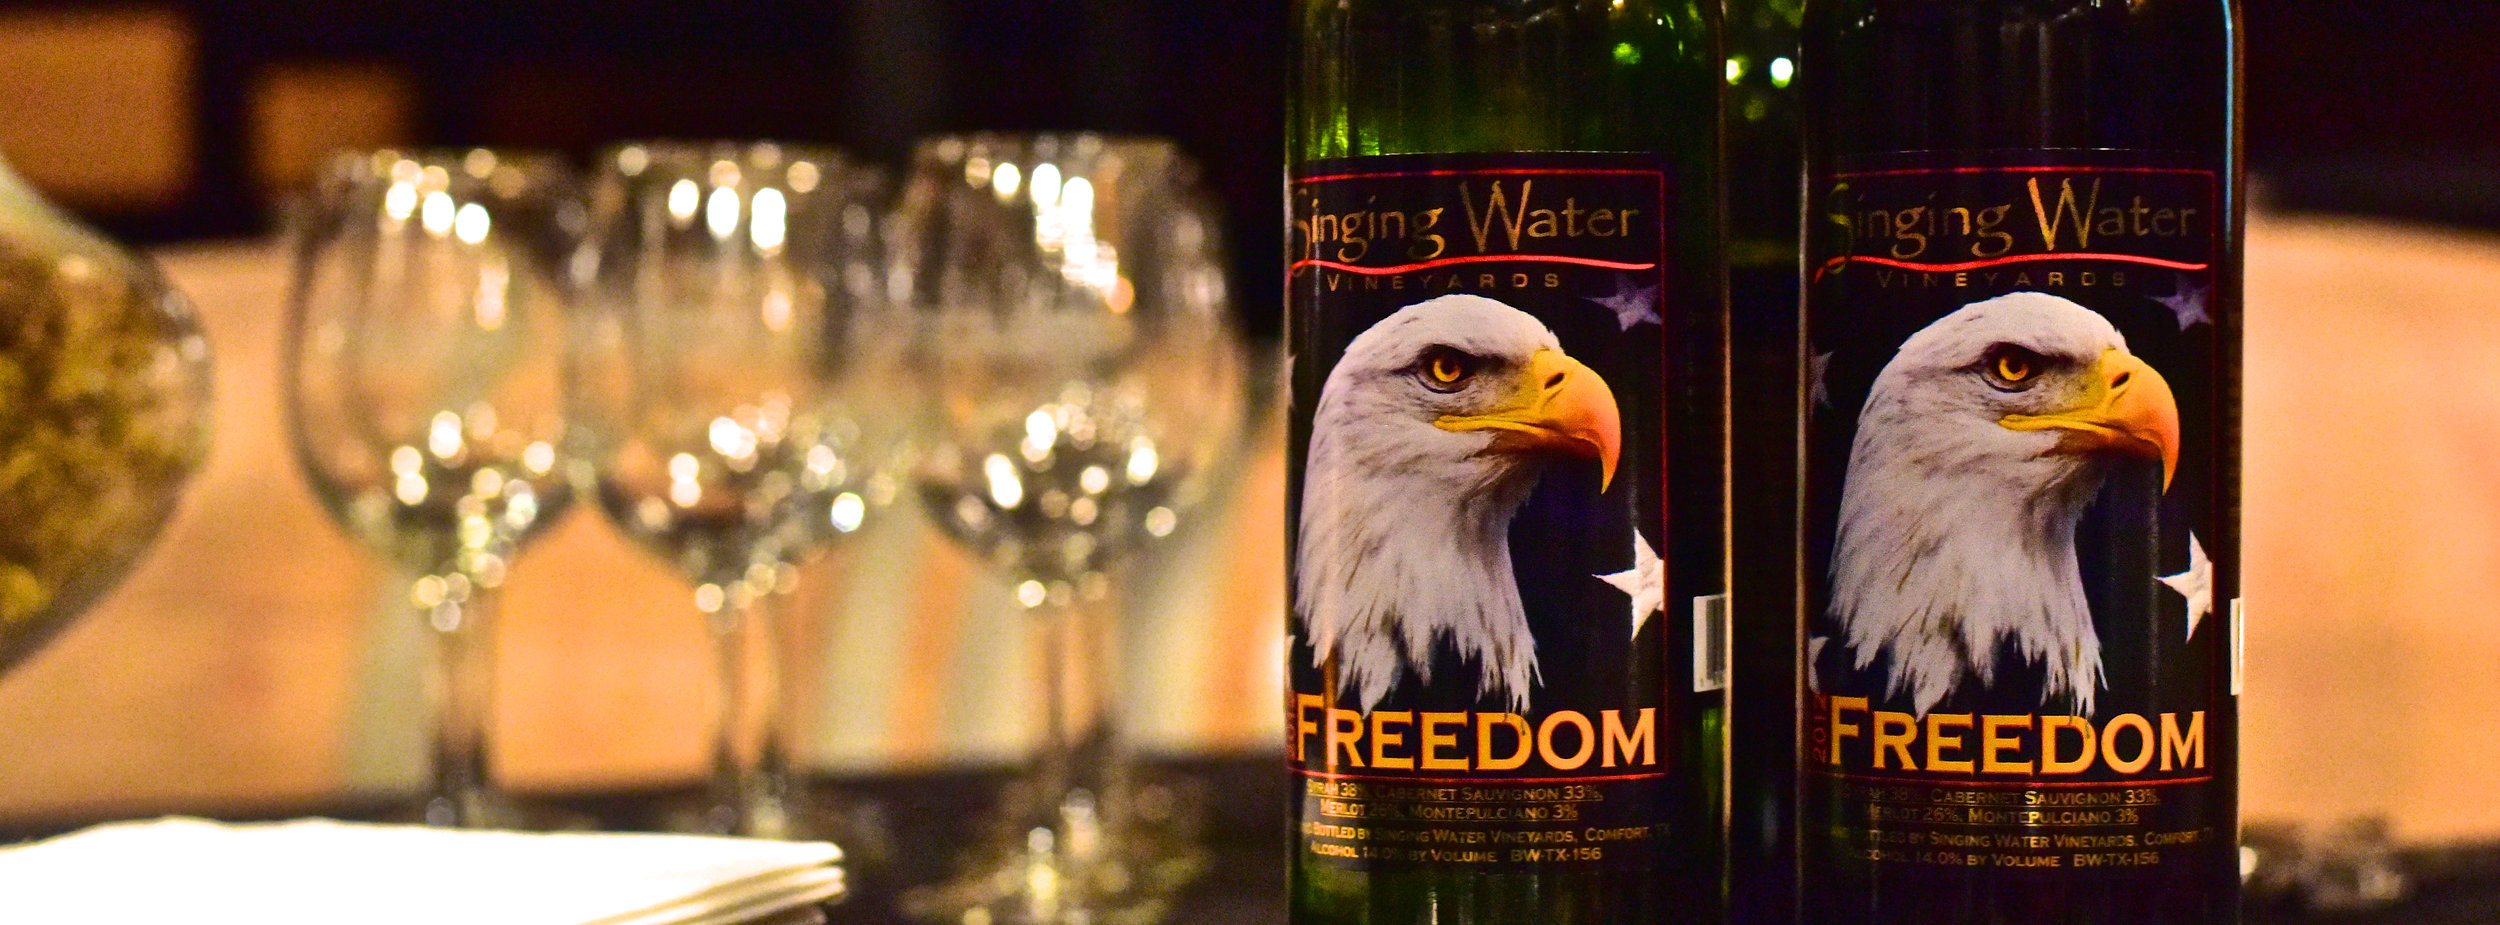 Our wine with a purpose. Proceeds from each bottle of Freedom go to the Fisher House and USO in San Antonio, TX.